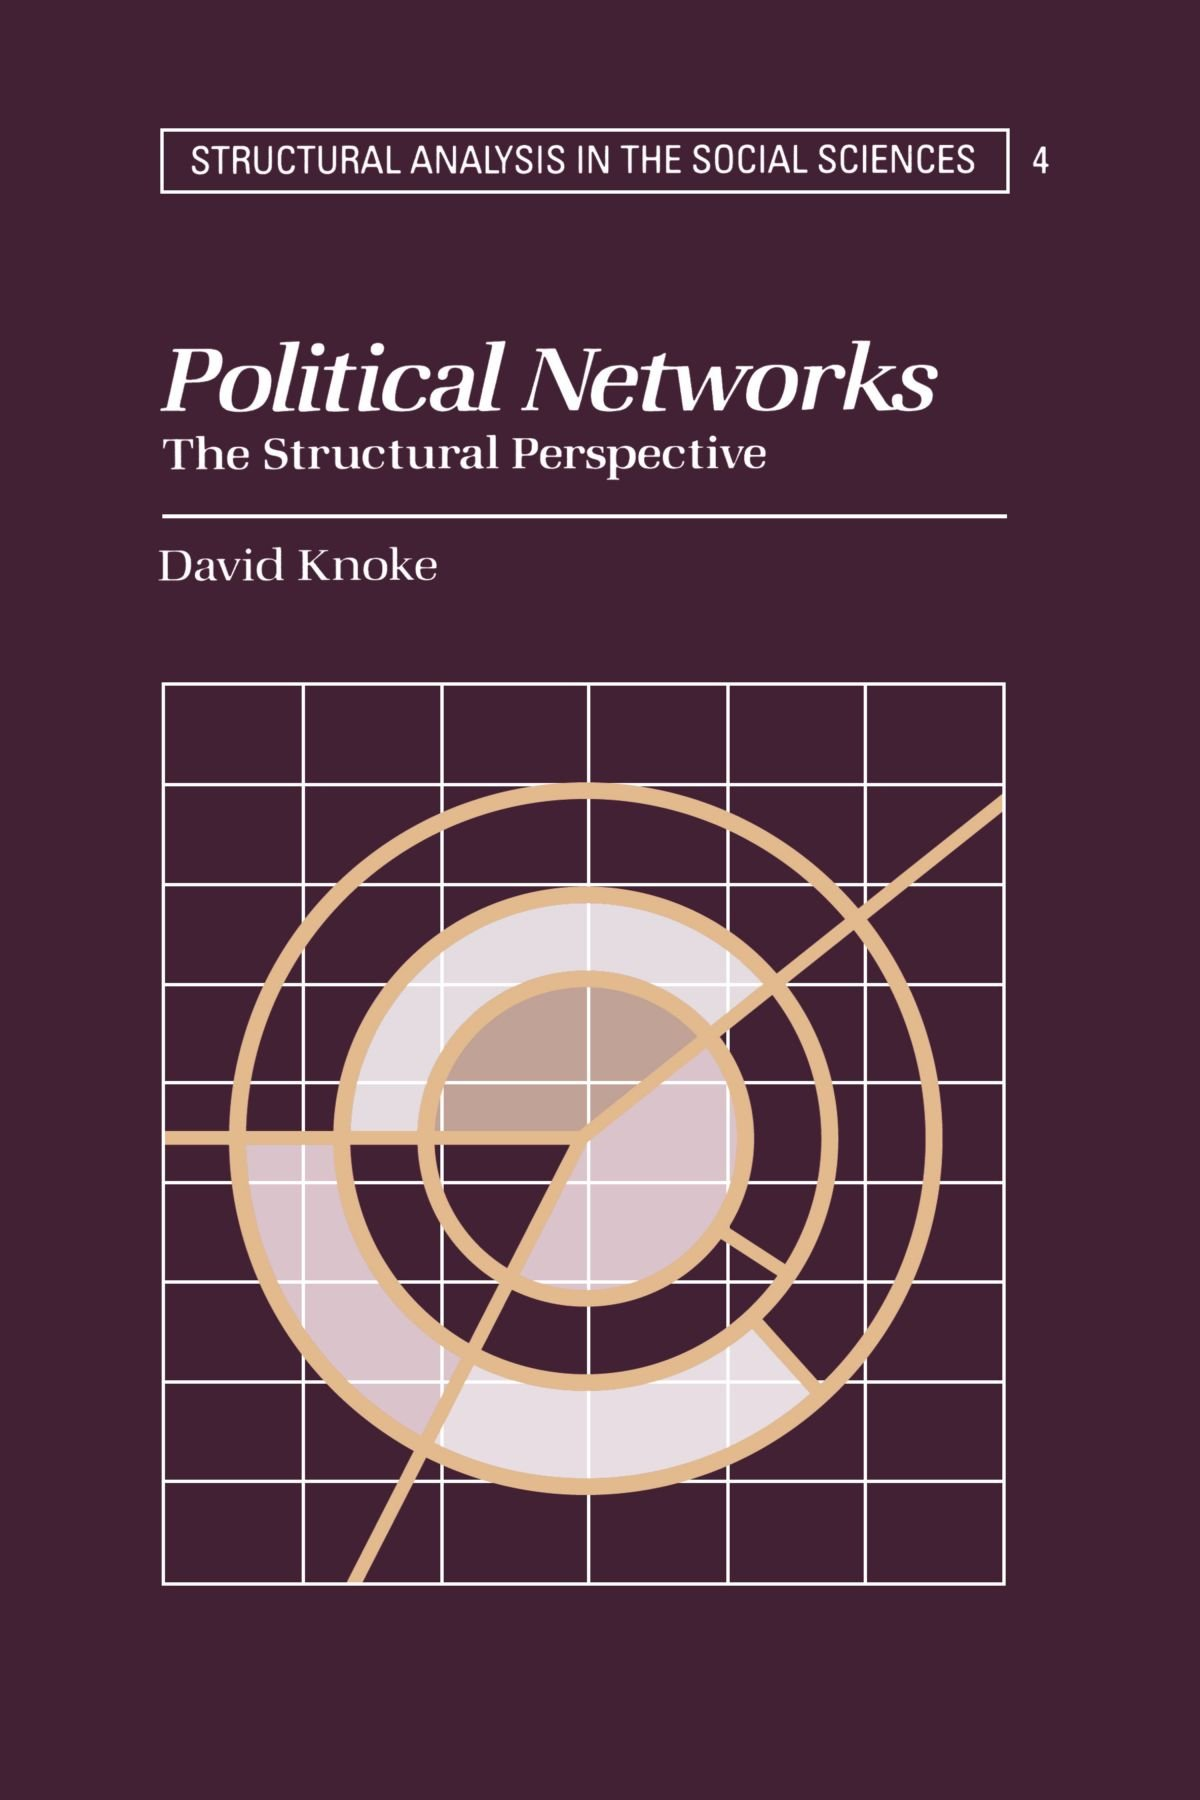 Amazon david knoke books biography blog audiobooks kindle political networks the structural perspective structural analysis in the social sciences fandeluxe Images